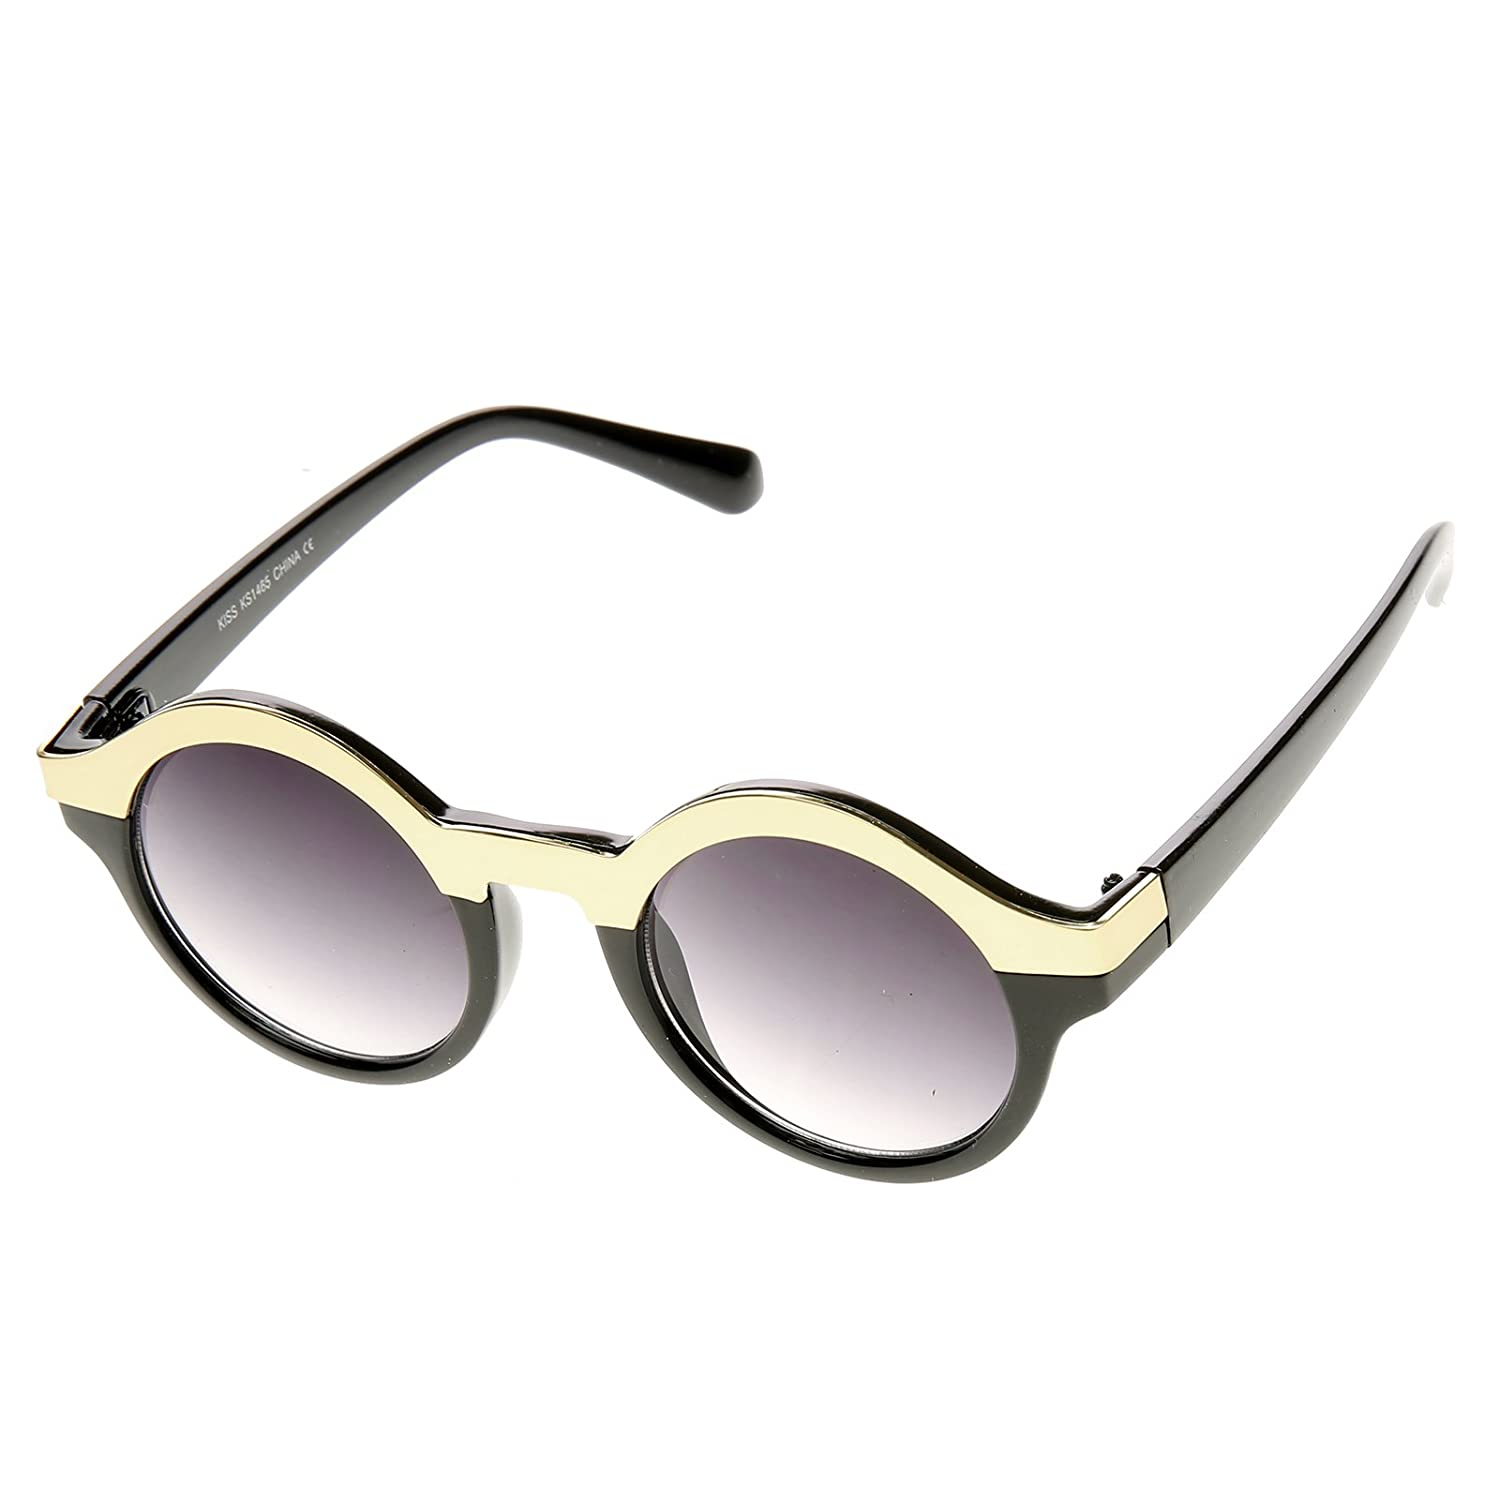 Black-Gold Vintage Inspired Retro Fashion Round Horned Circle Sunglasses